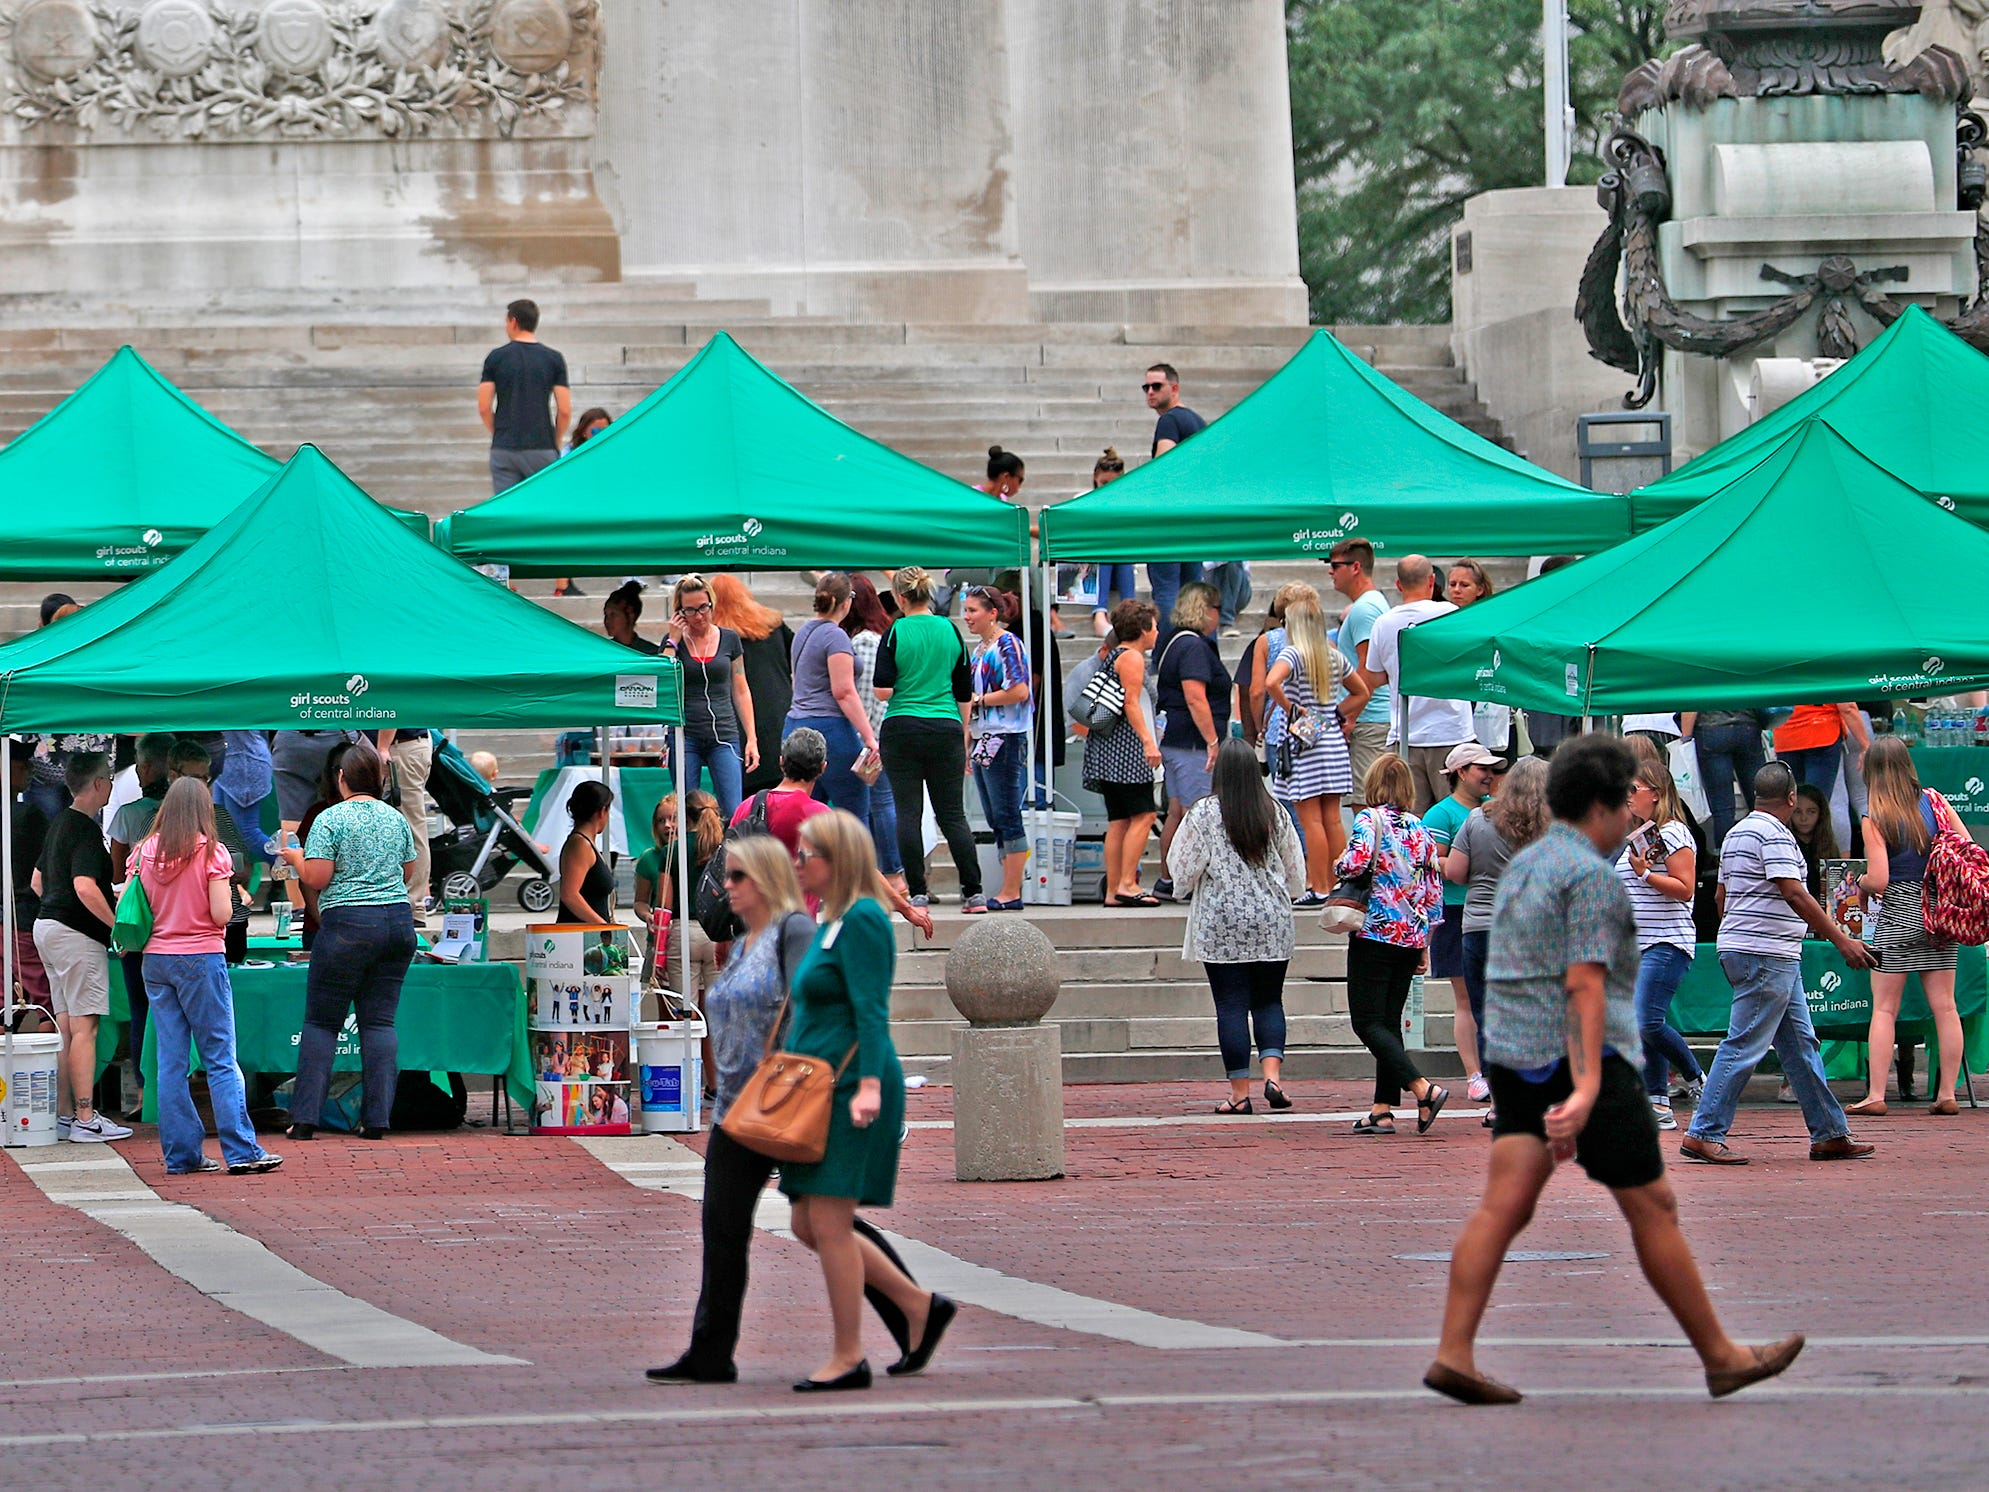 Tents are lined up during the Girl Scouts' S'mores on the Circle event, Friday, Aug. 10, 2018.  The event celebrated National S'mores Day.  Seven local chefs were featured, creating gourmet s'mores treats, sold as a fundraiser.  Proceeds go for financial assistance for Girl Scouts, helping all girls who want to be a girl scout participating in hands-on adventures and STEM activities.